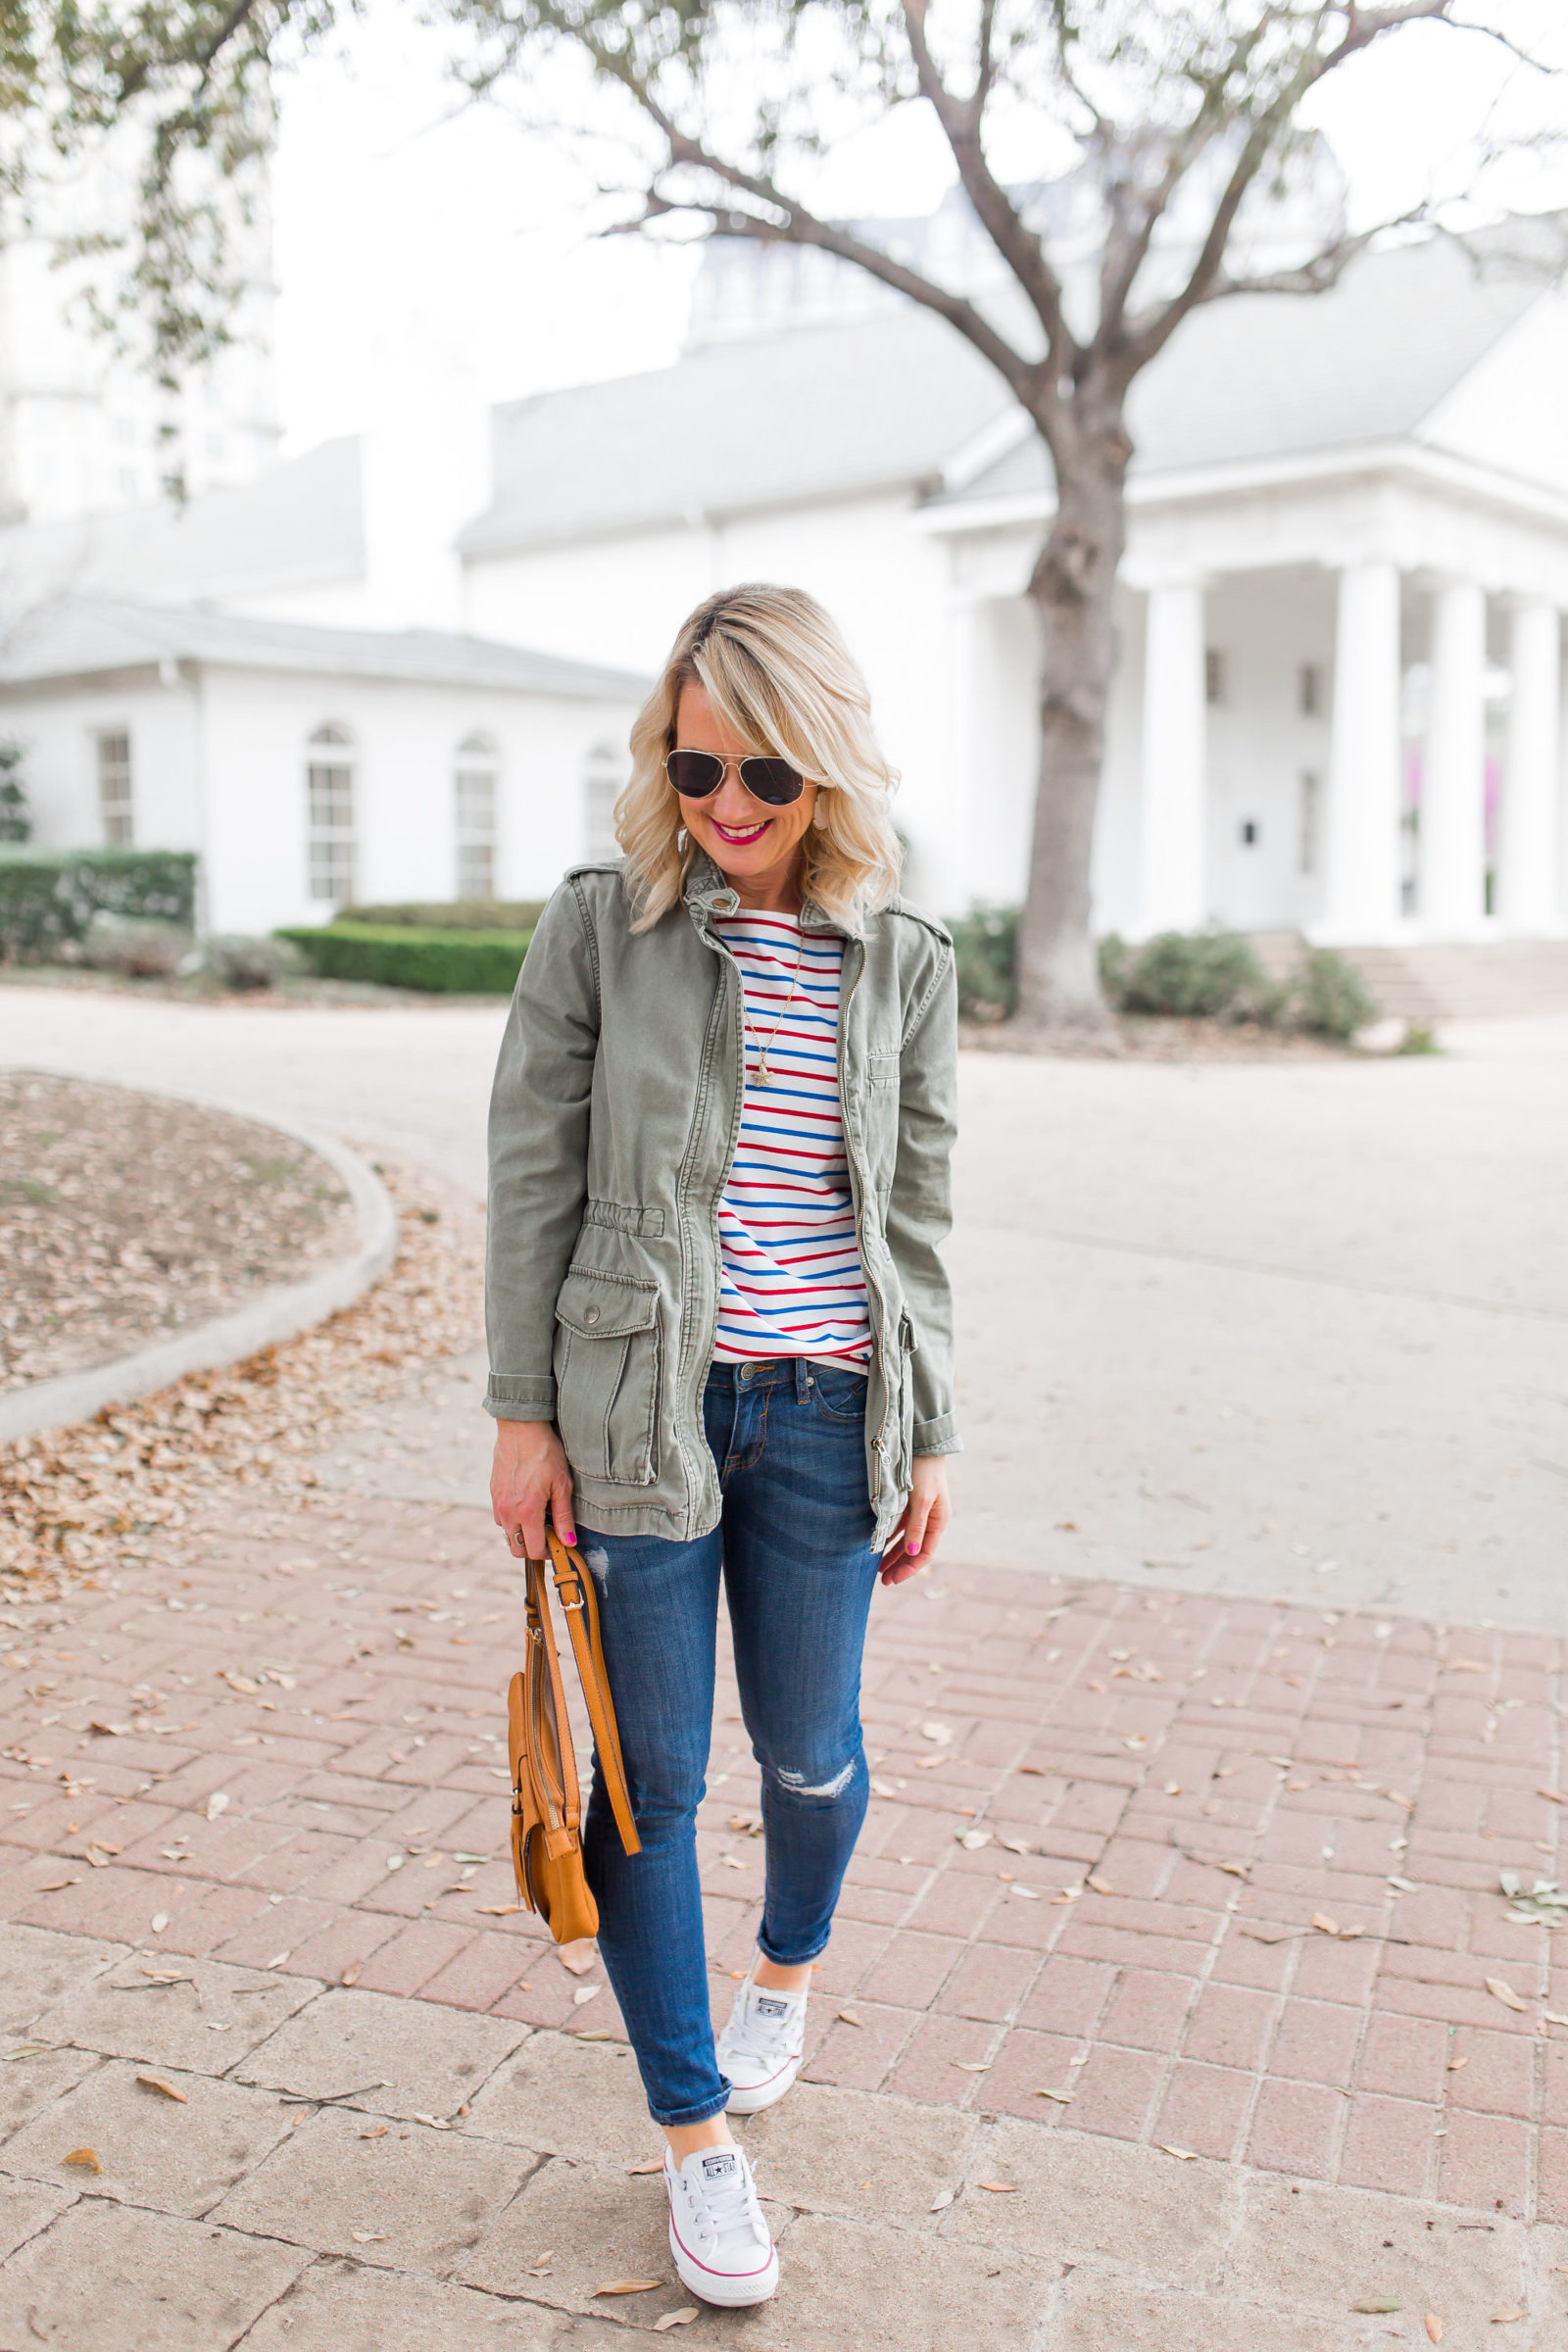 red white and blue striped shirt military jacket outfit